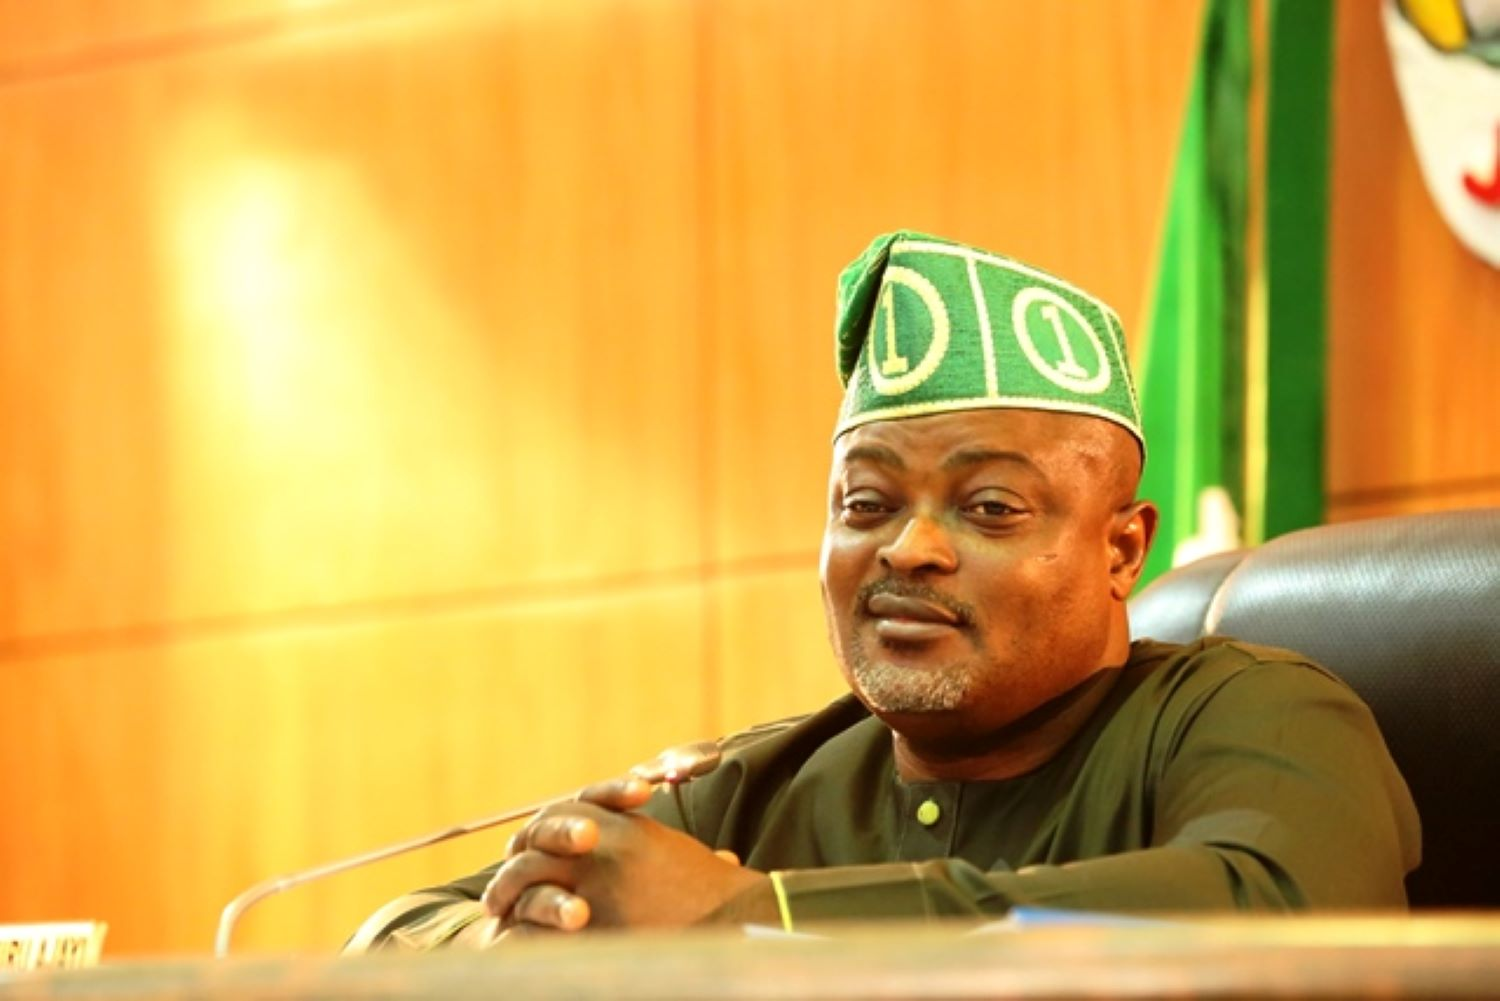 CSOs back Lagos State embattled Speaker, Obasa against alleged media reports